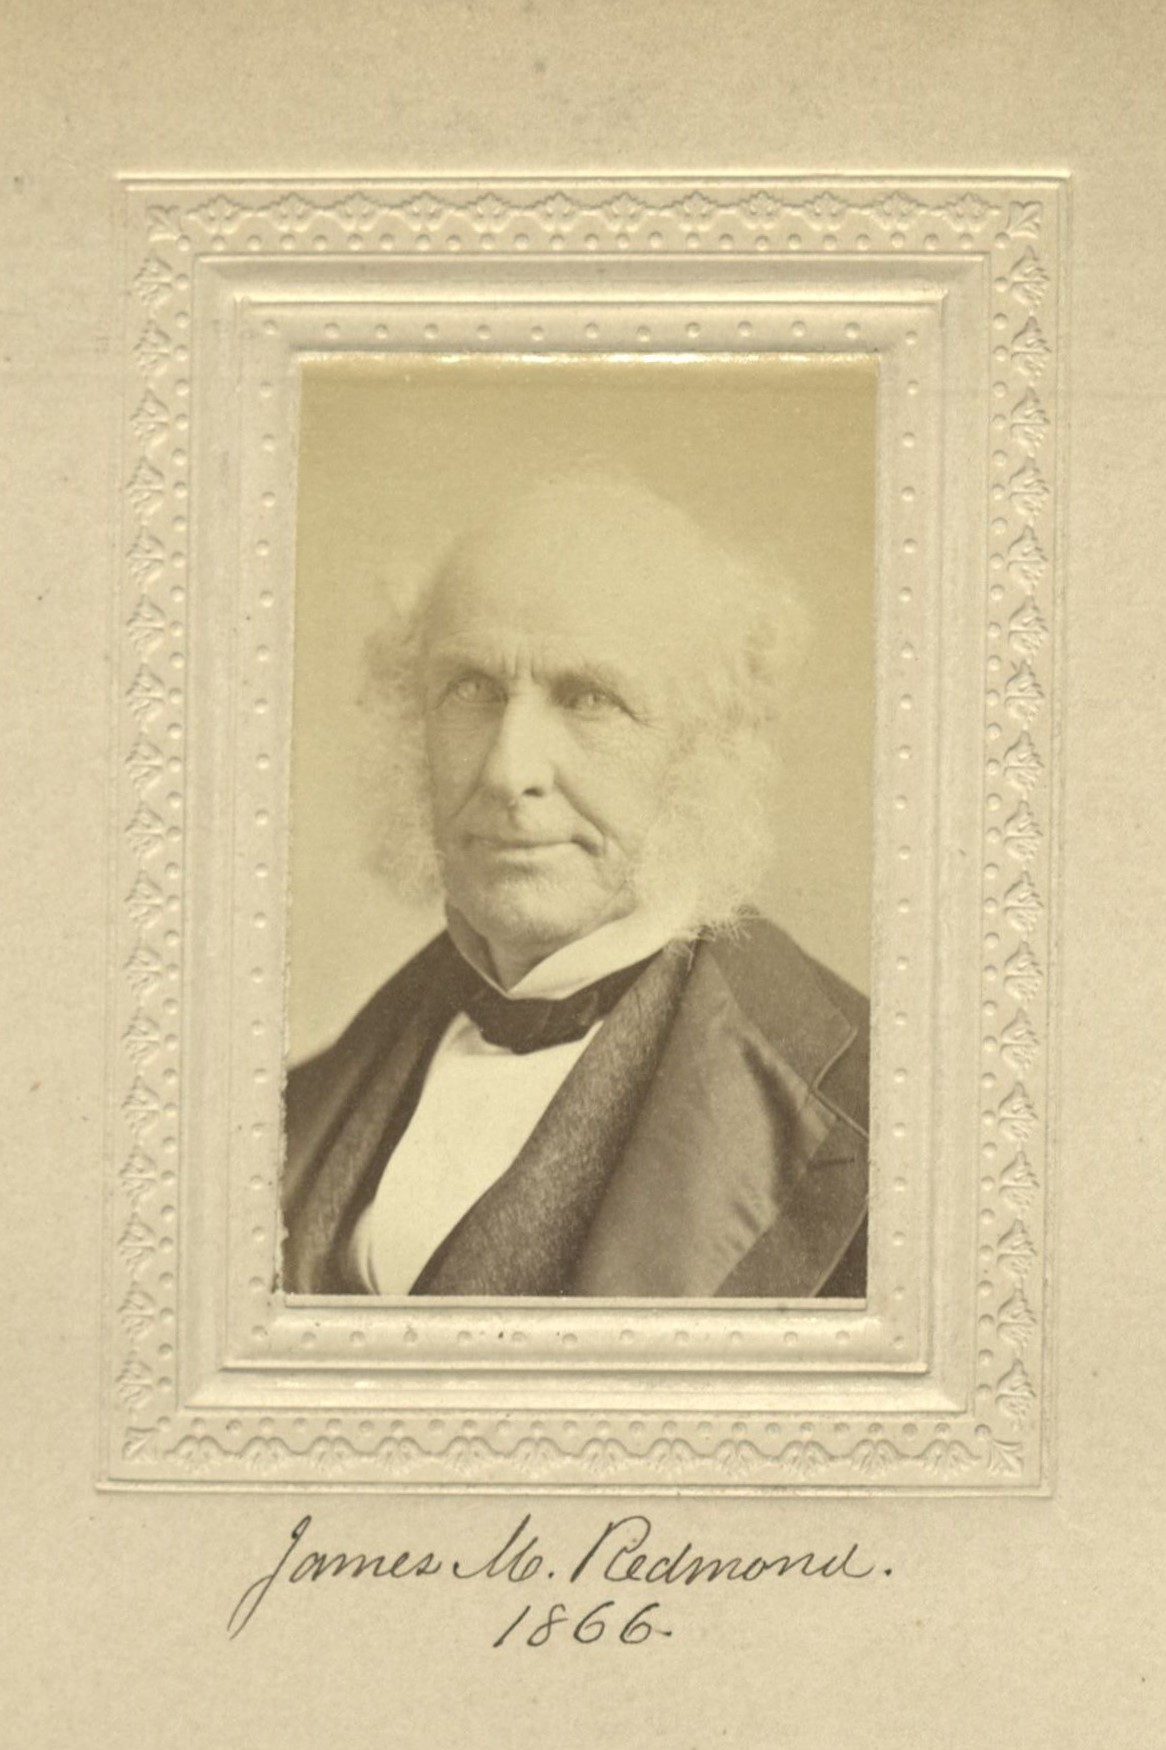 Member portrait of James M. Redmond